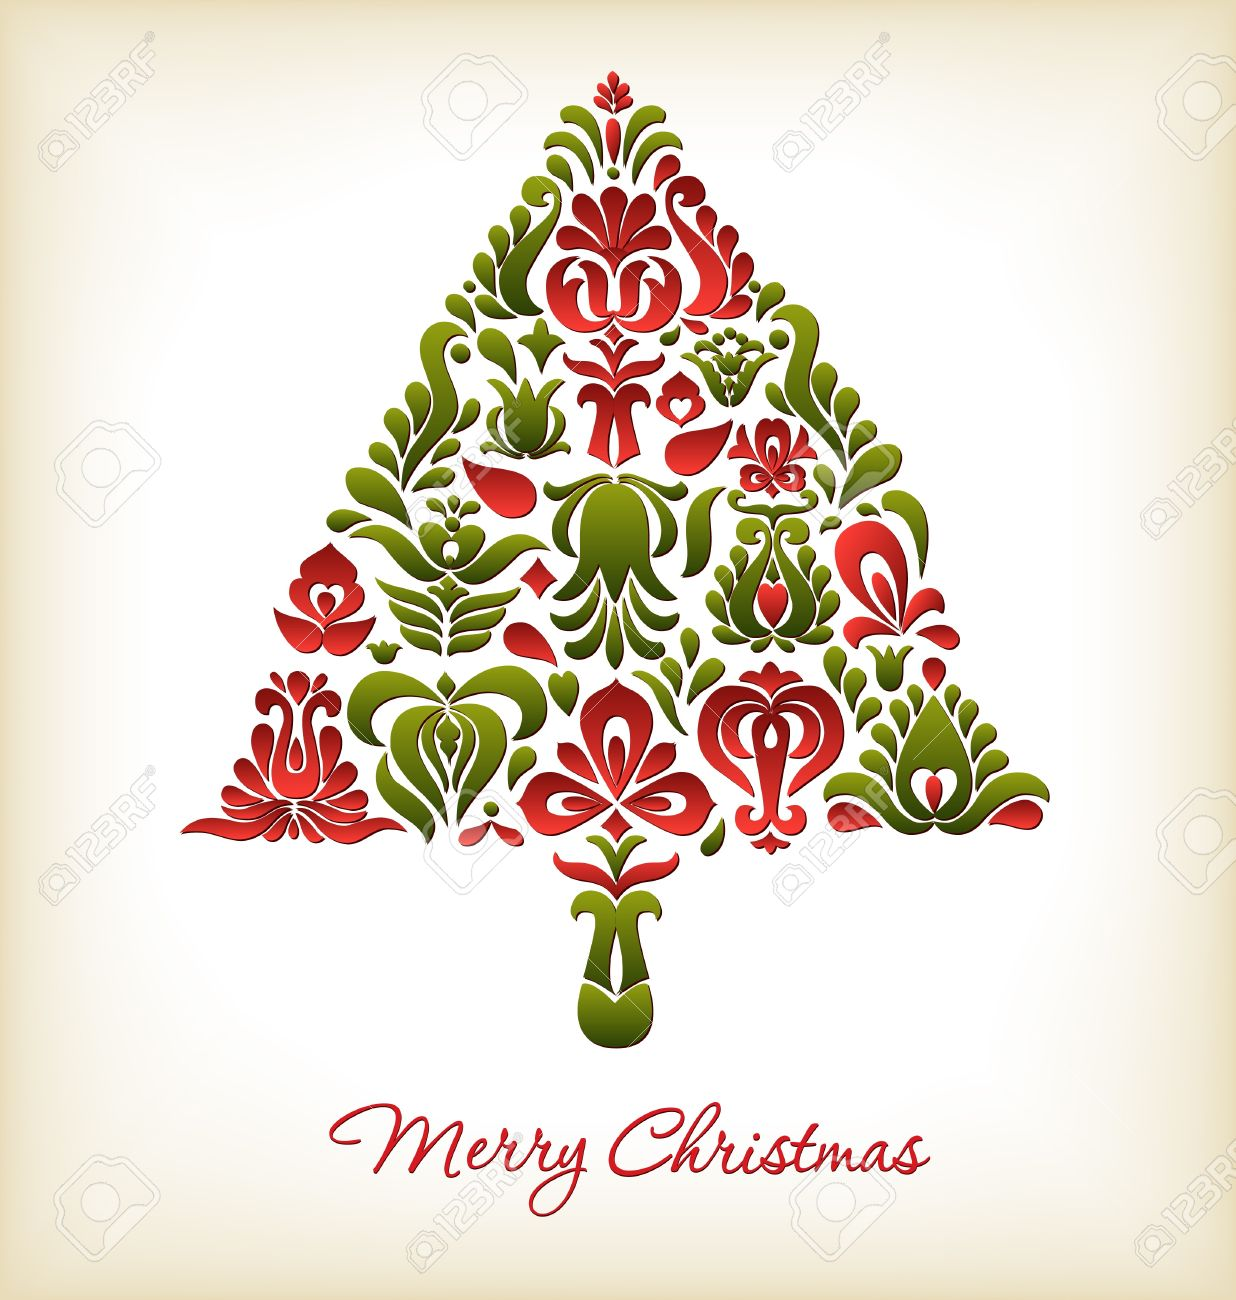 Floral Christmas Card Design Royalty Free Cliparts, Vectors, And ...